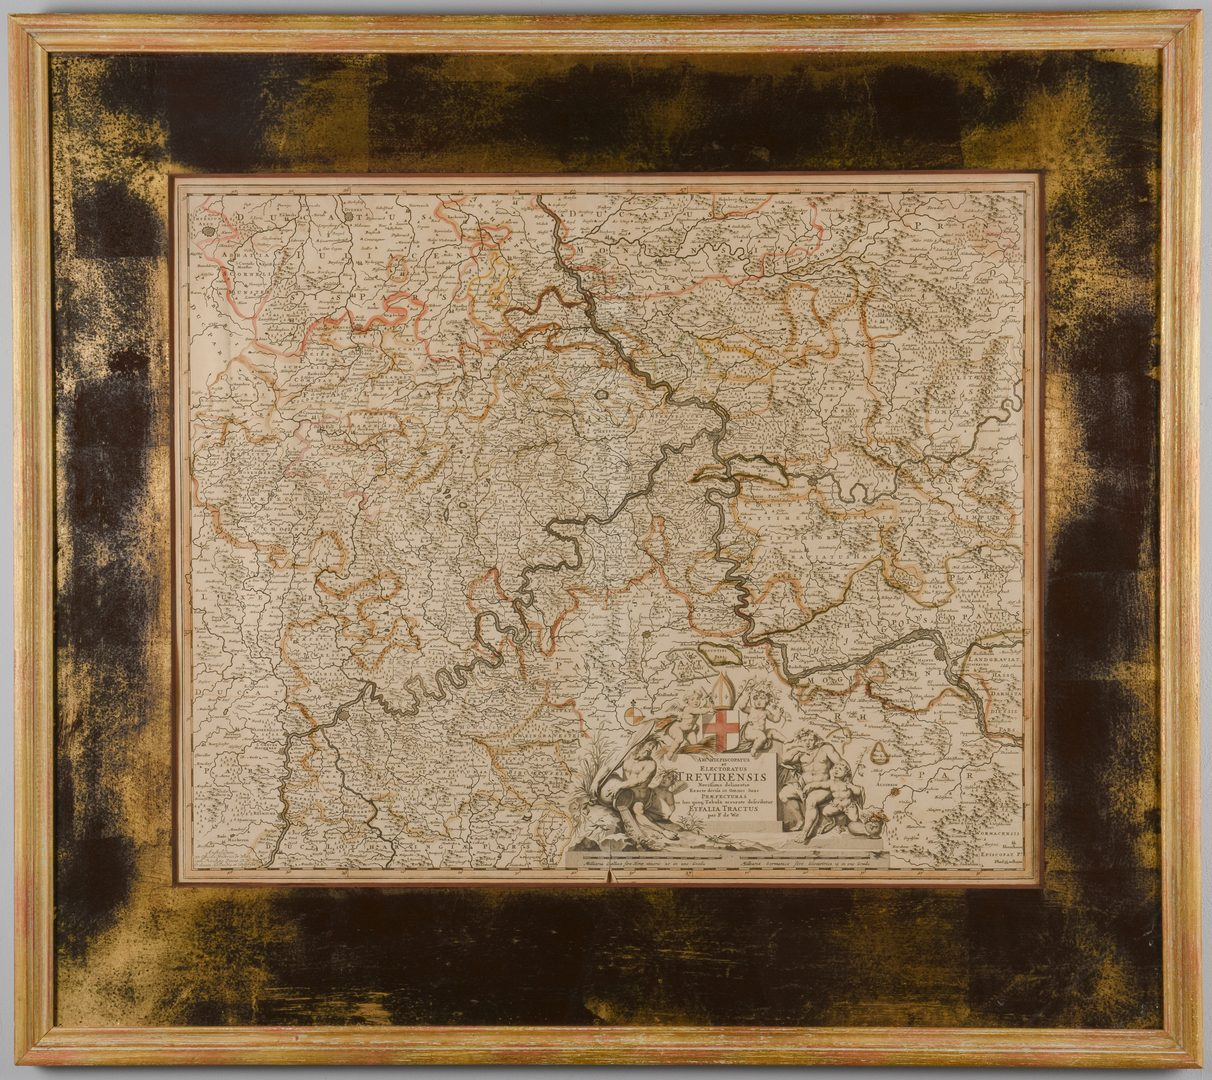 Lot 546: Map of the Rhine Forest, Germany